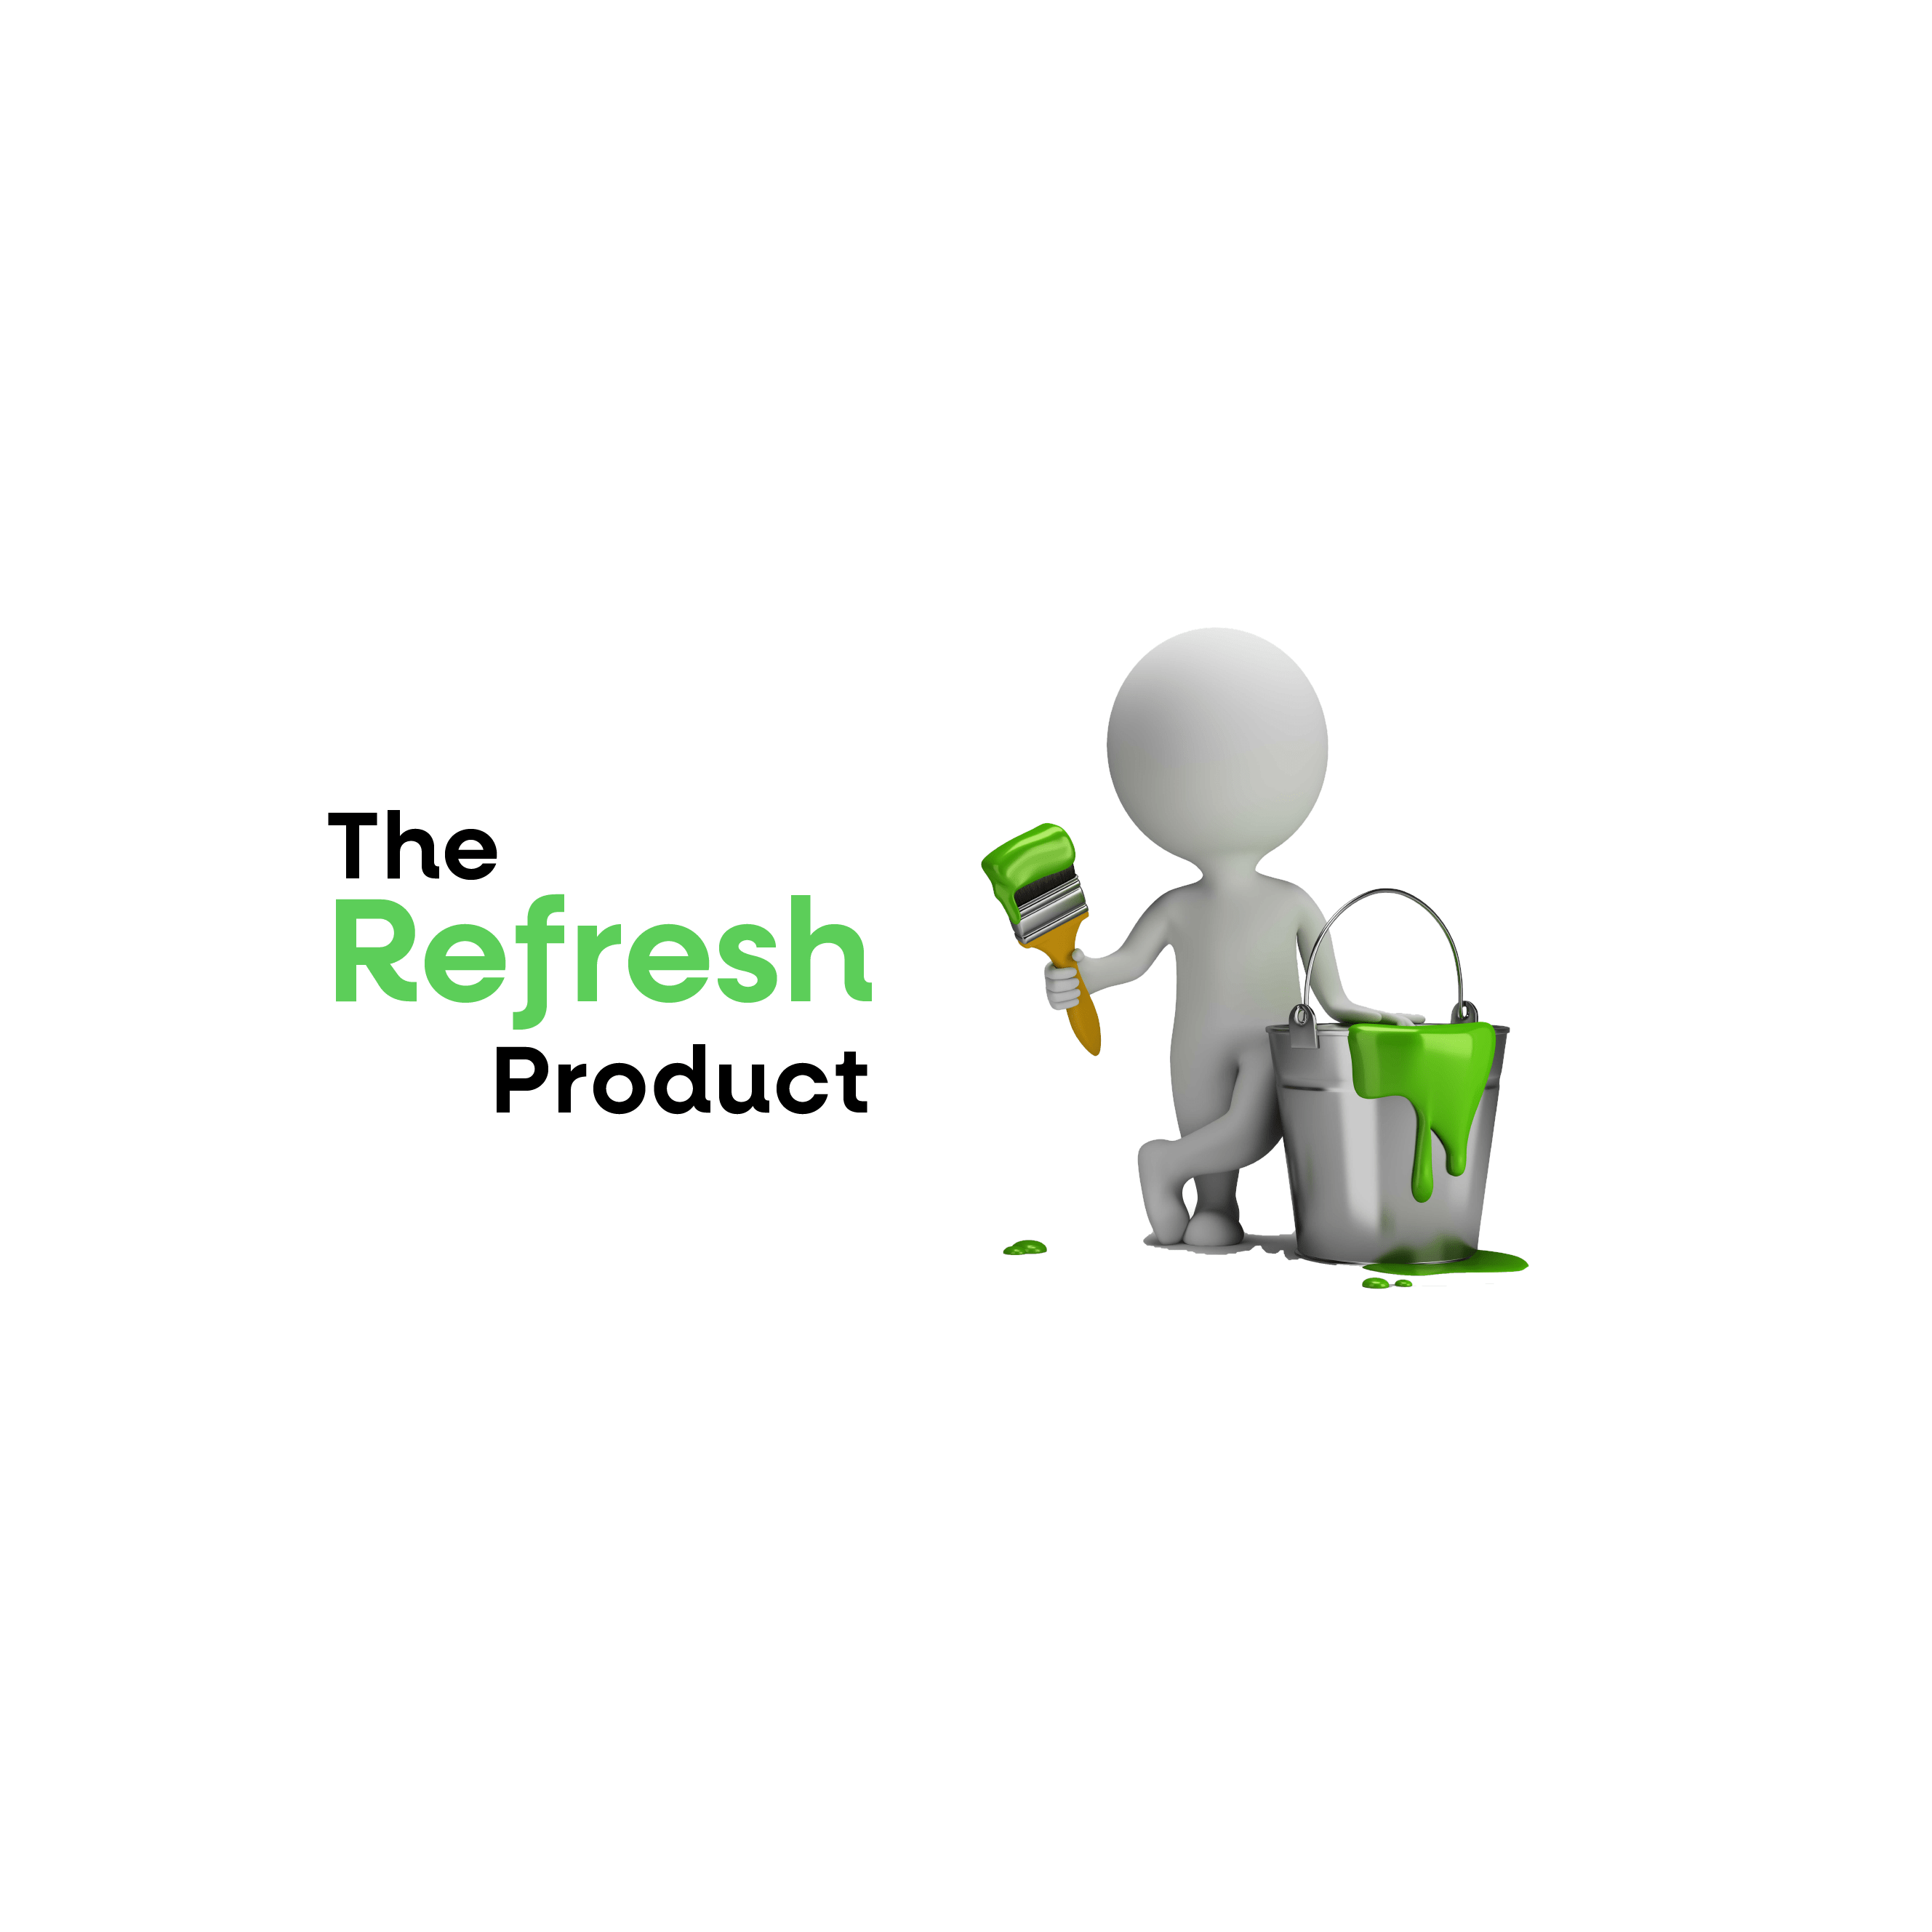 The Refresh Product